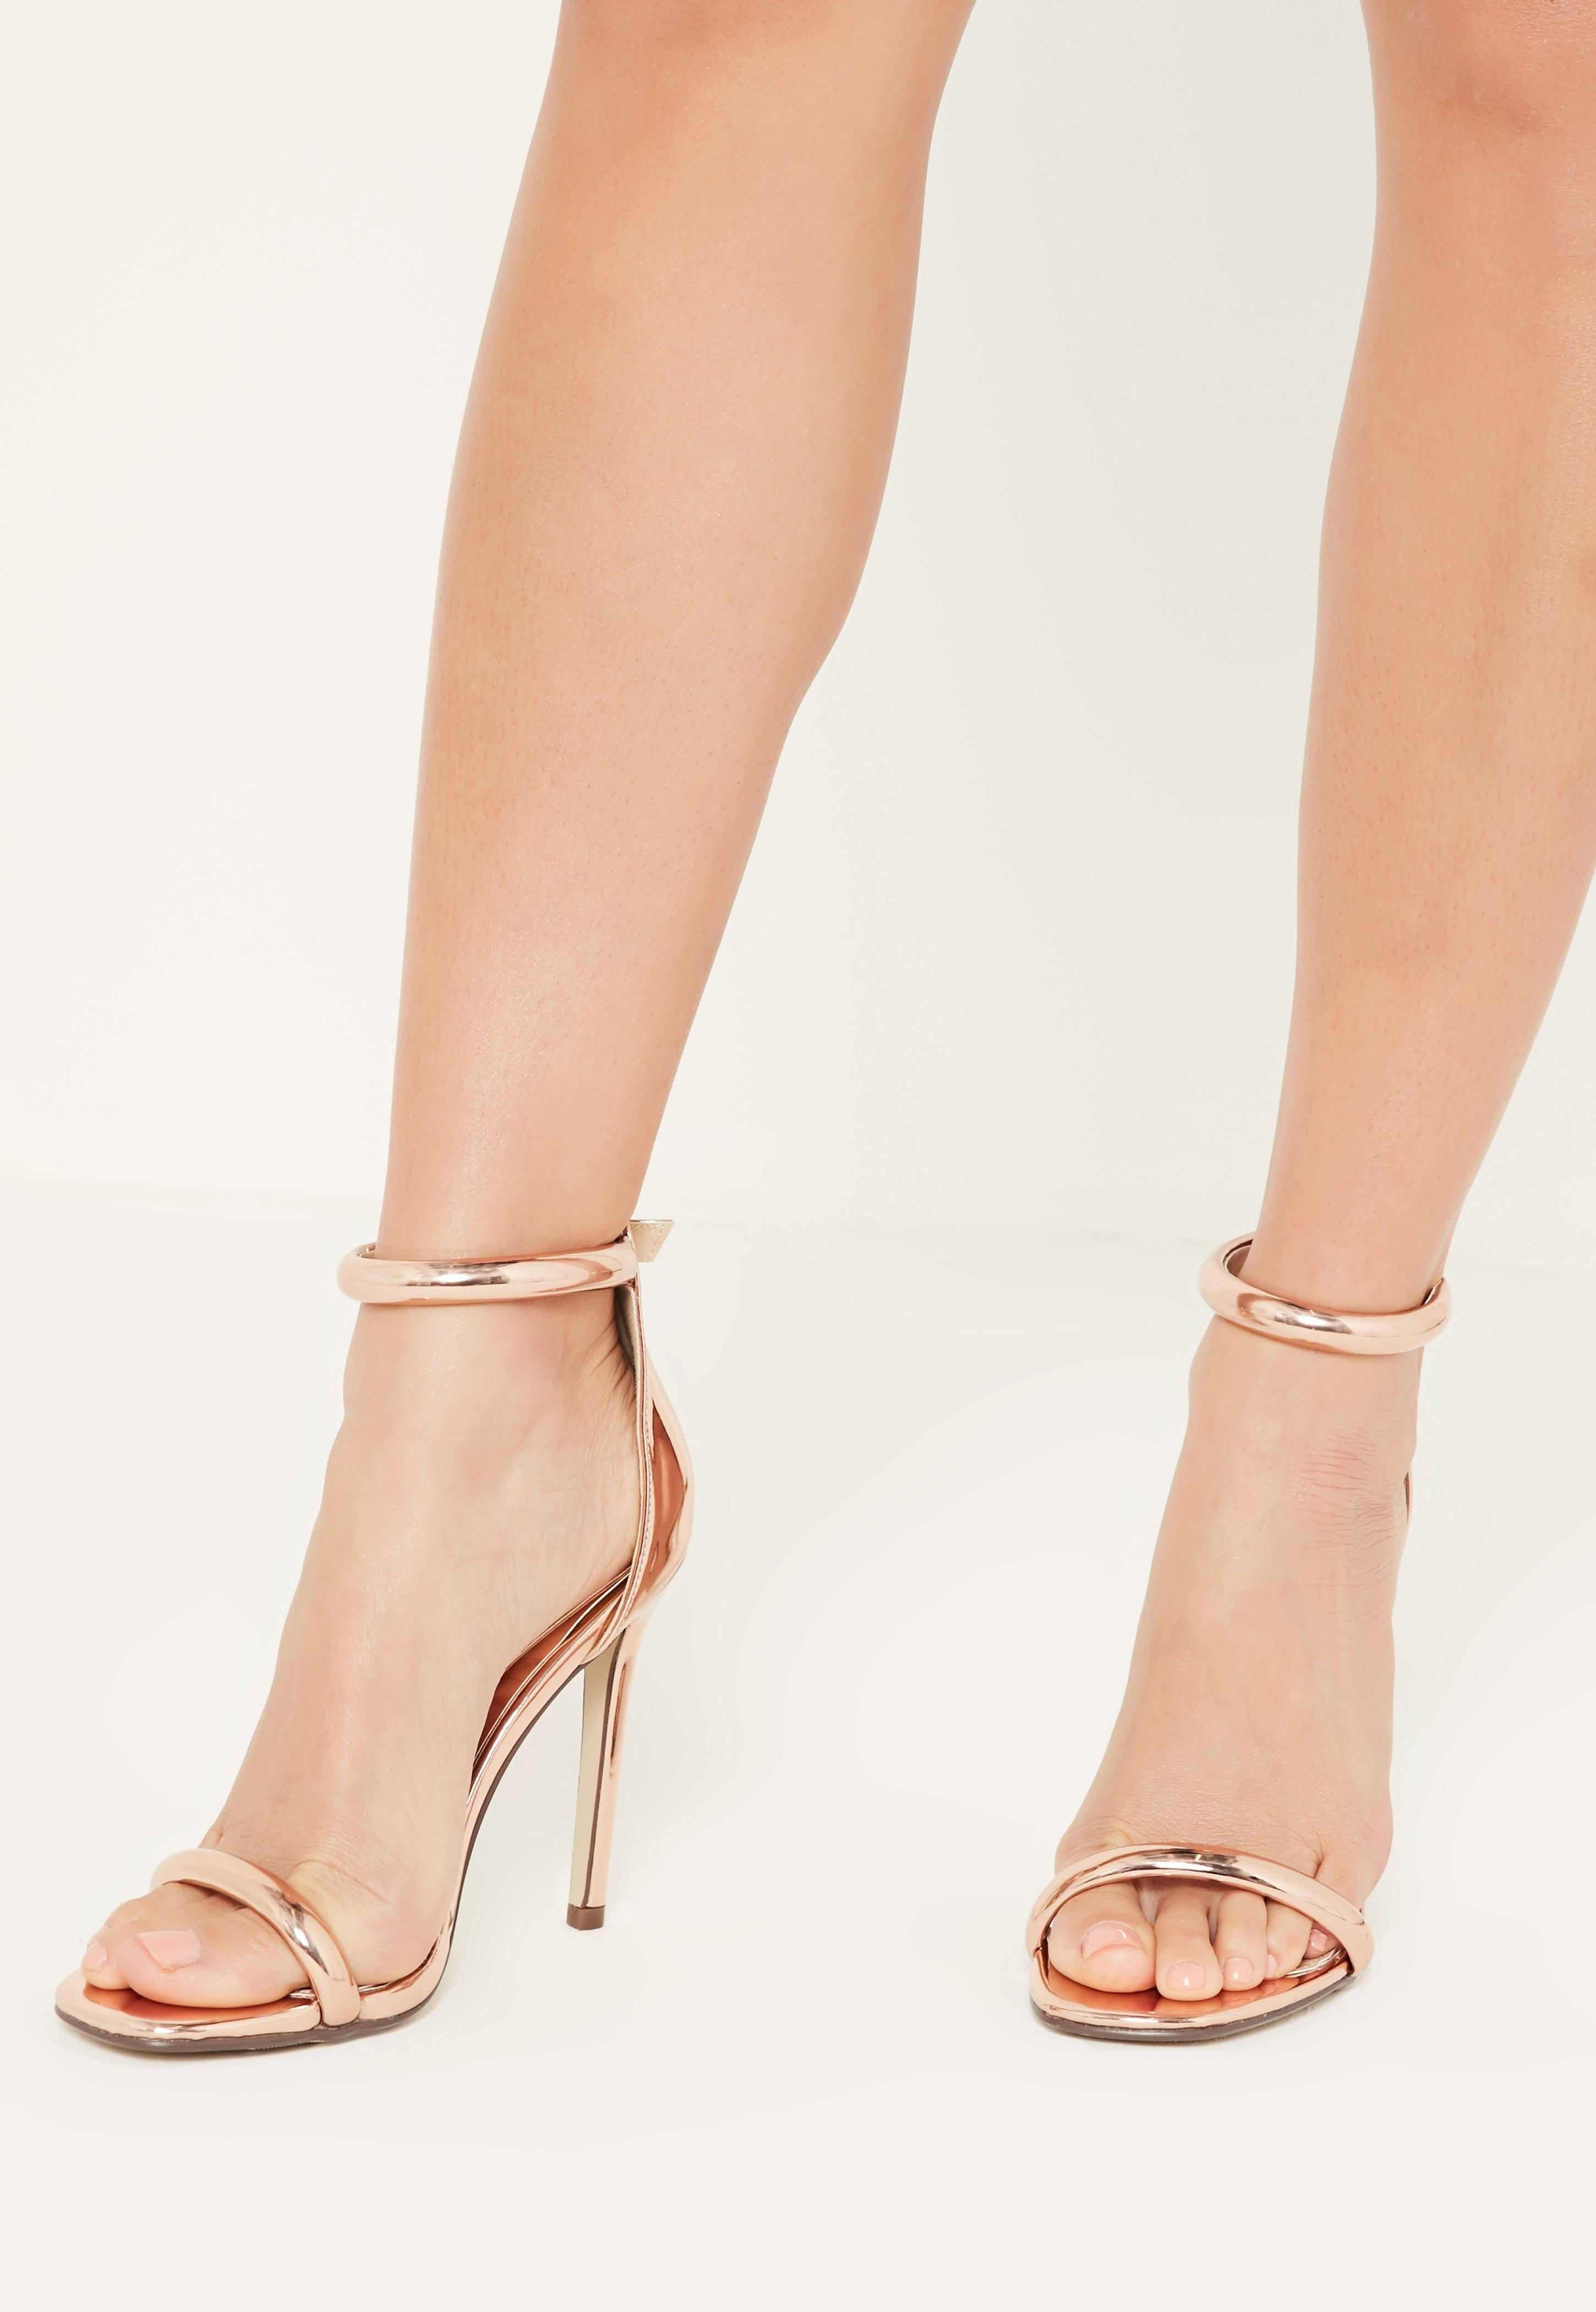 a3f6b81c4a7ed0 Lyst - Missguided Rose Gold Rounded Strap Barely There Sandals in Pink